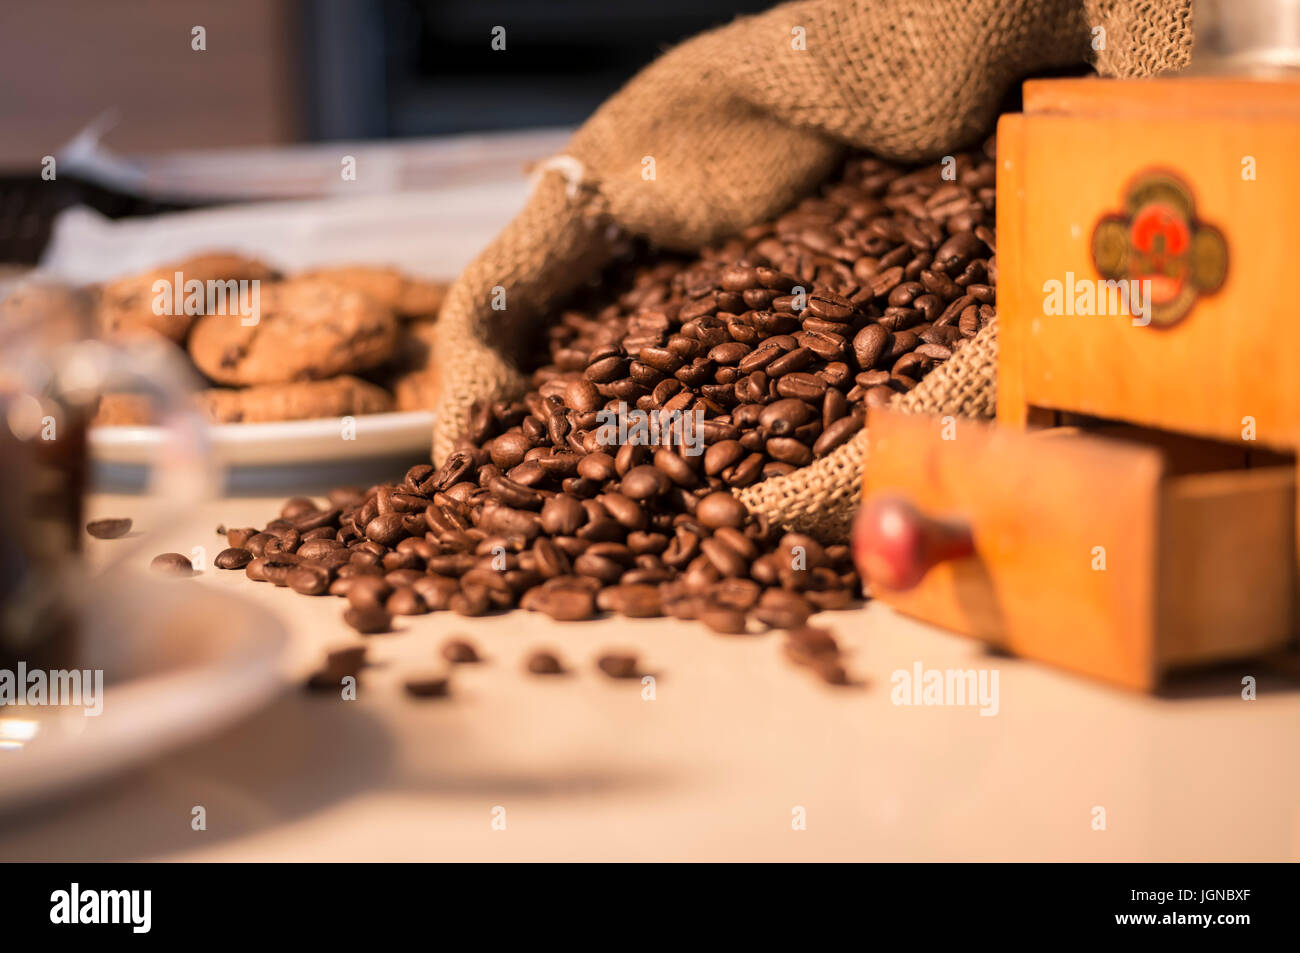 Close up of coffee beans in burlap sack with coffee grinder - Stock Image